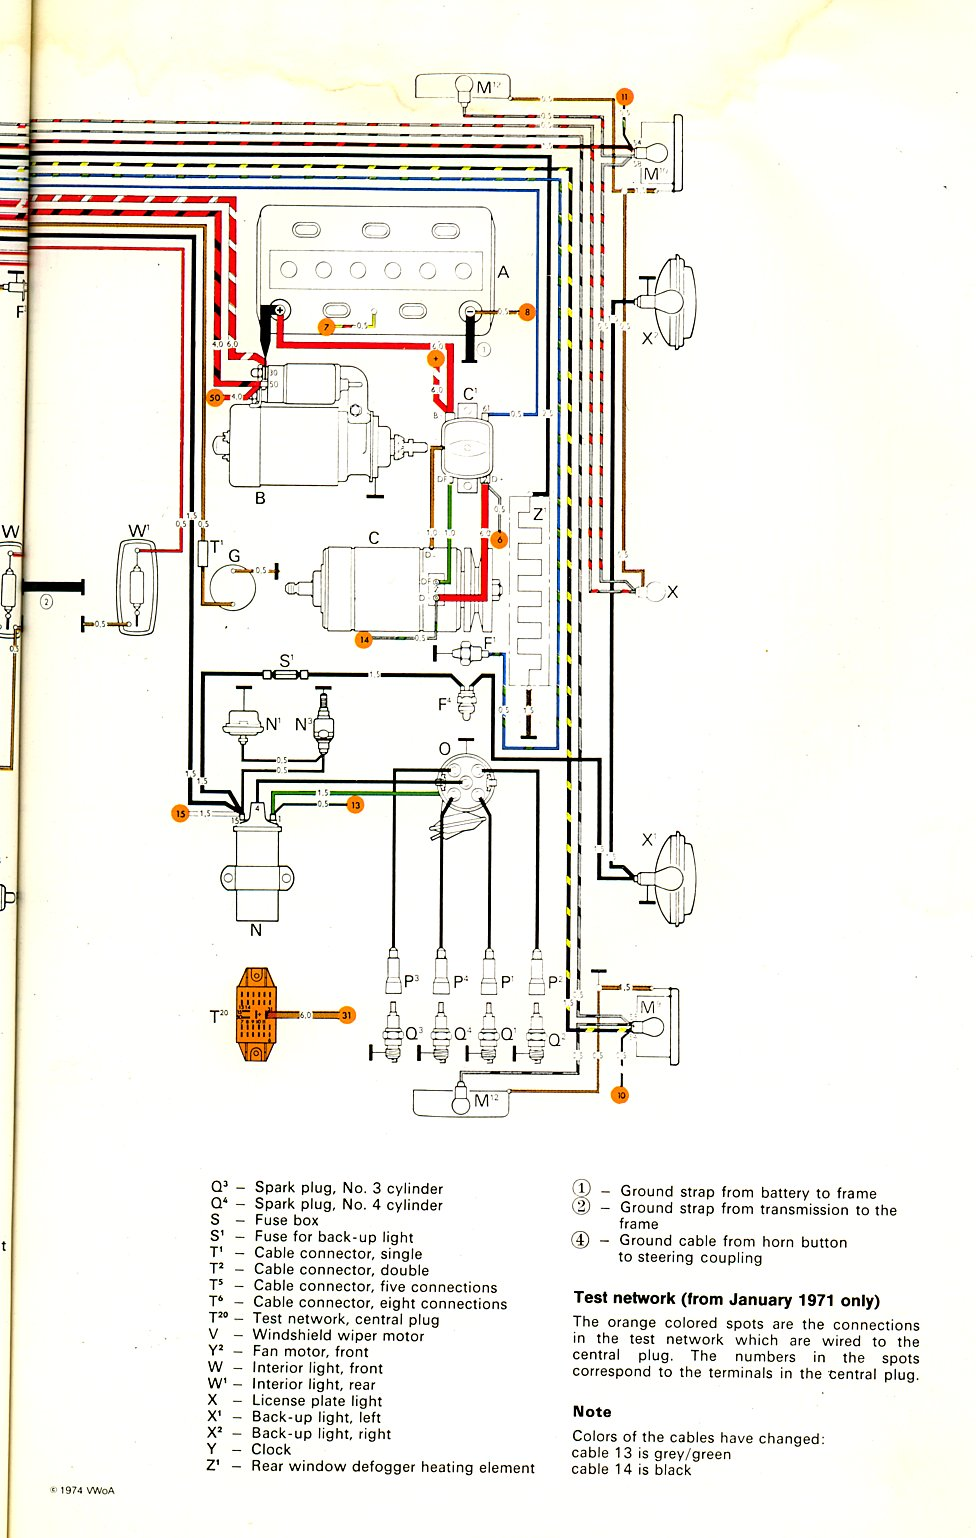 thesamba com type 2 wiring diagrams rh thesamba com Bug Diagram Bug Diagram